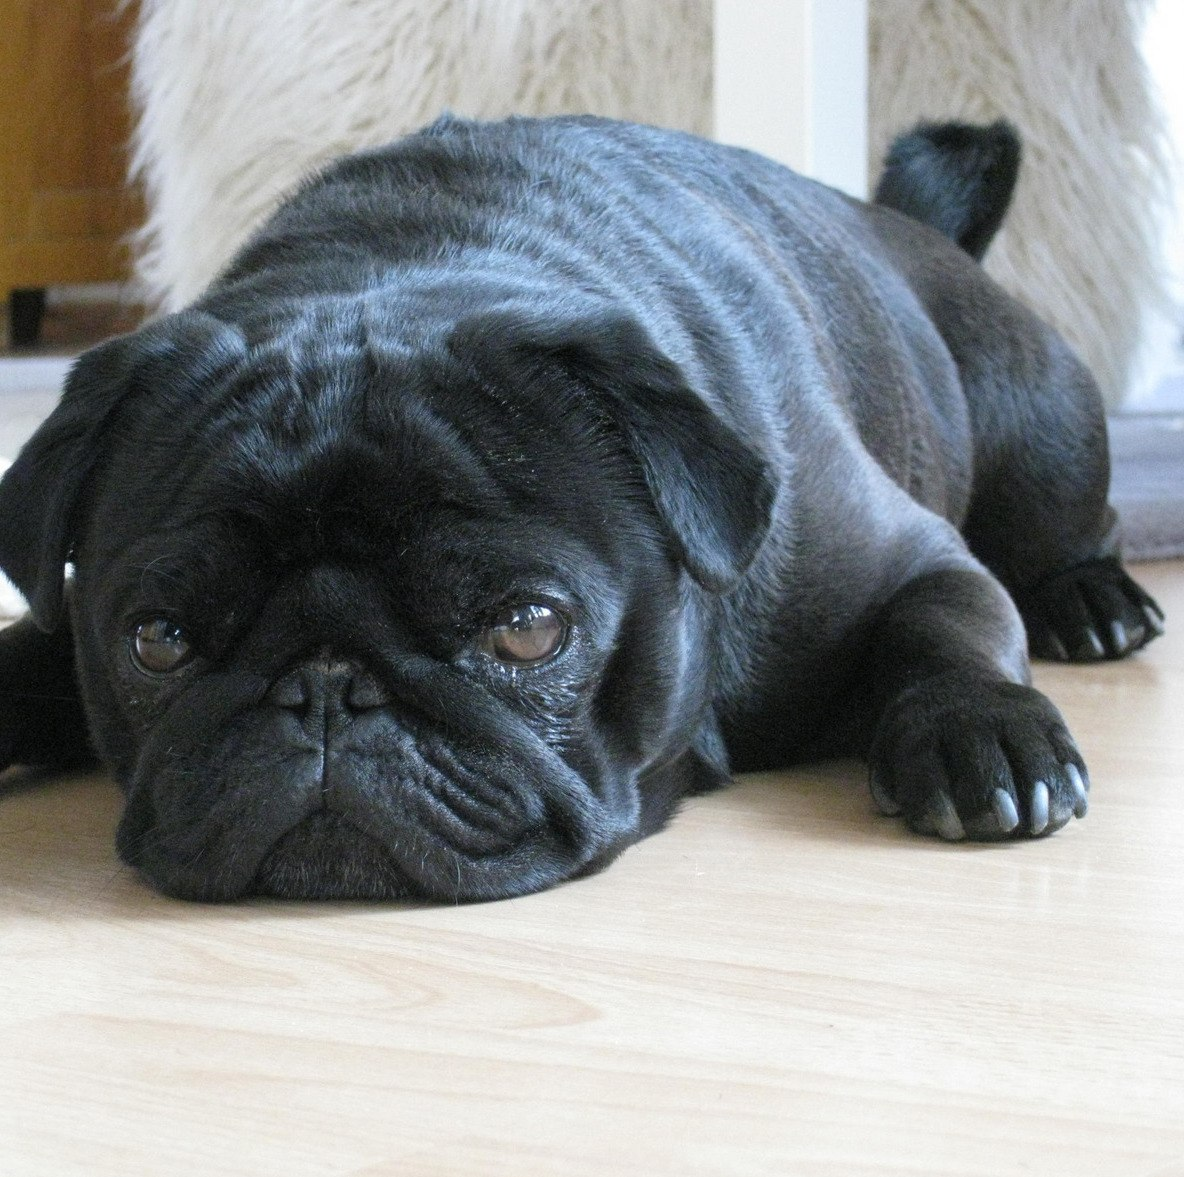 Black pug laying on the ground